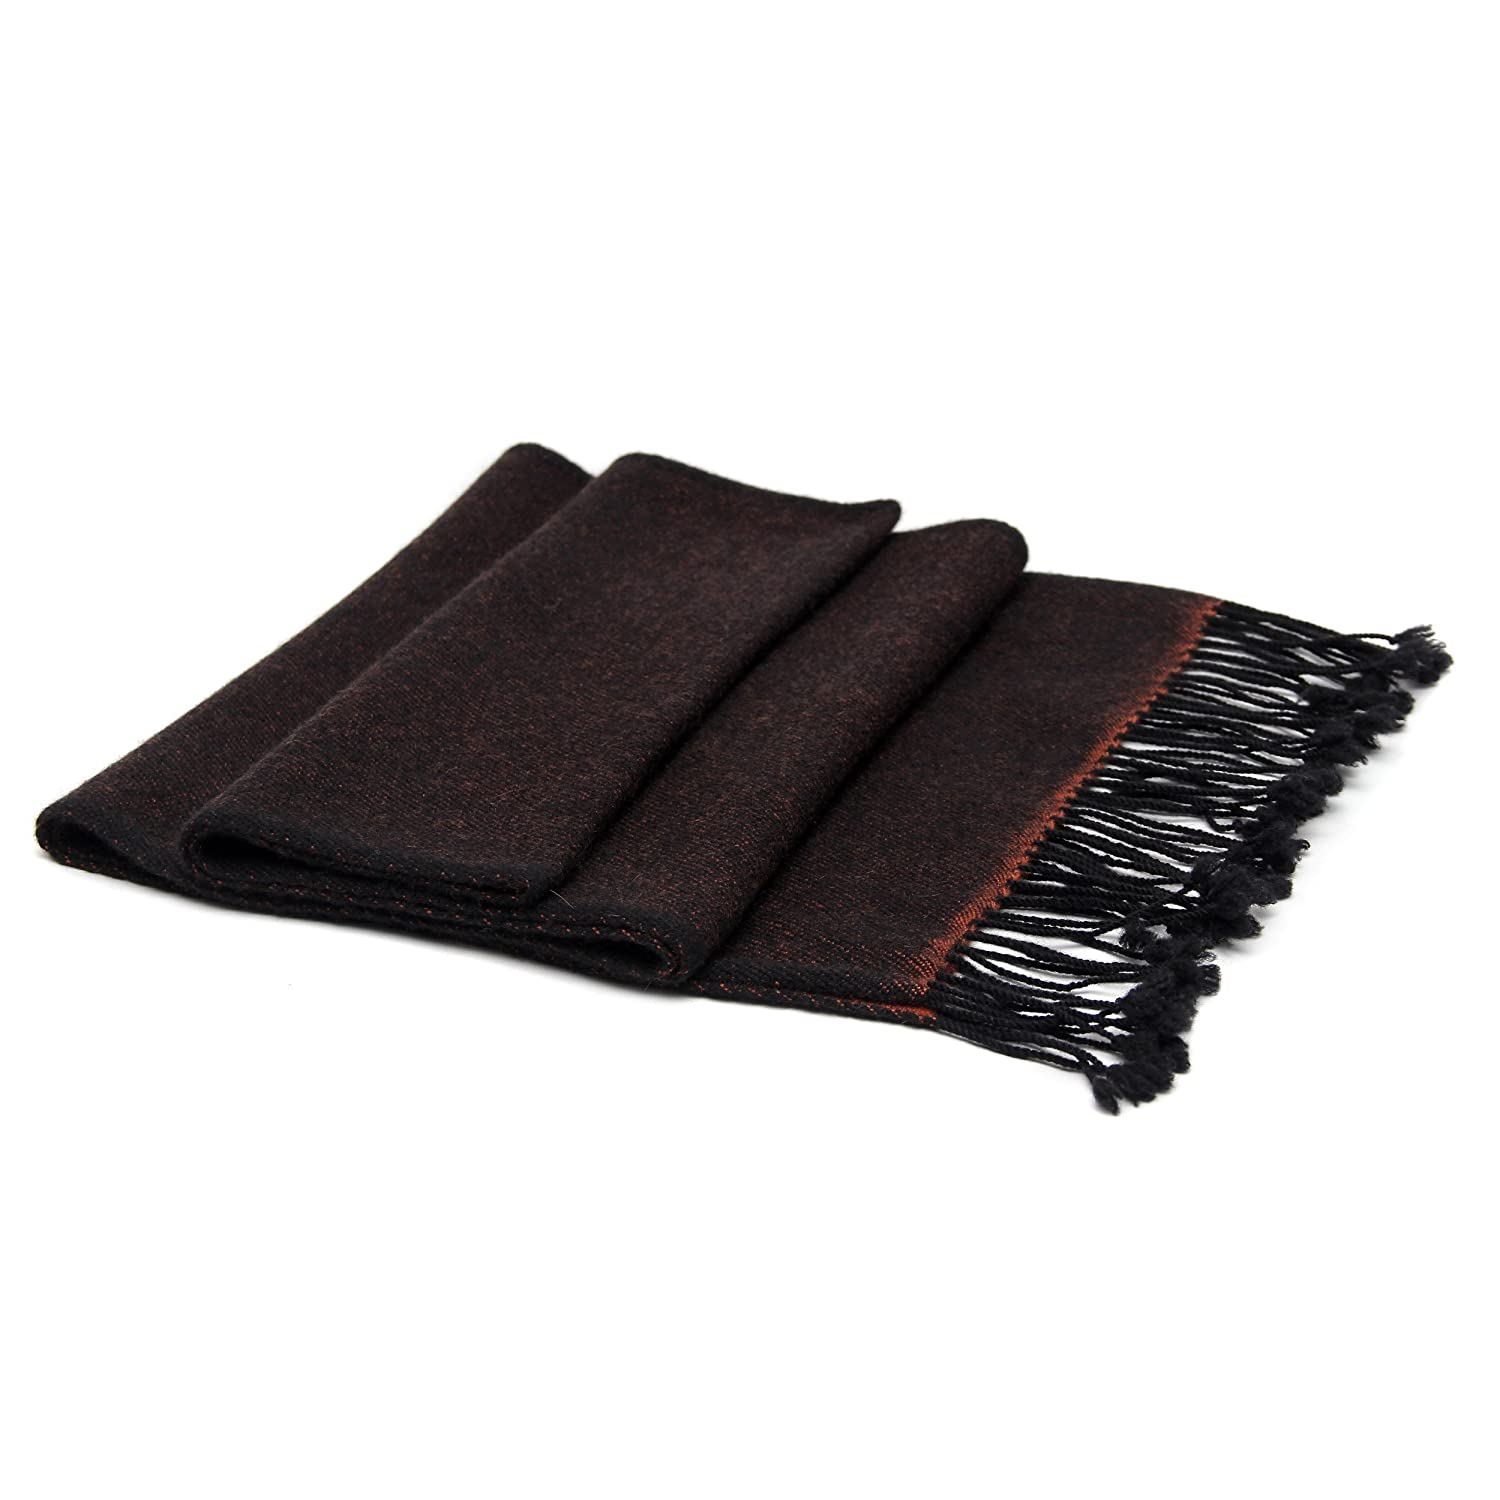 100% Reversible Cashmere Scarf with Tassel, 26/2 Mongolian Yarn Composition, Hand-woven, Maroon & Black Moksha Cashmere